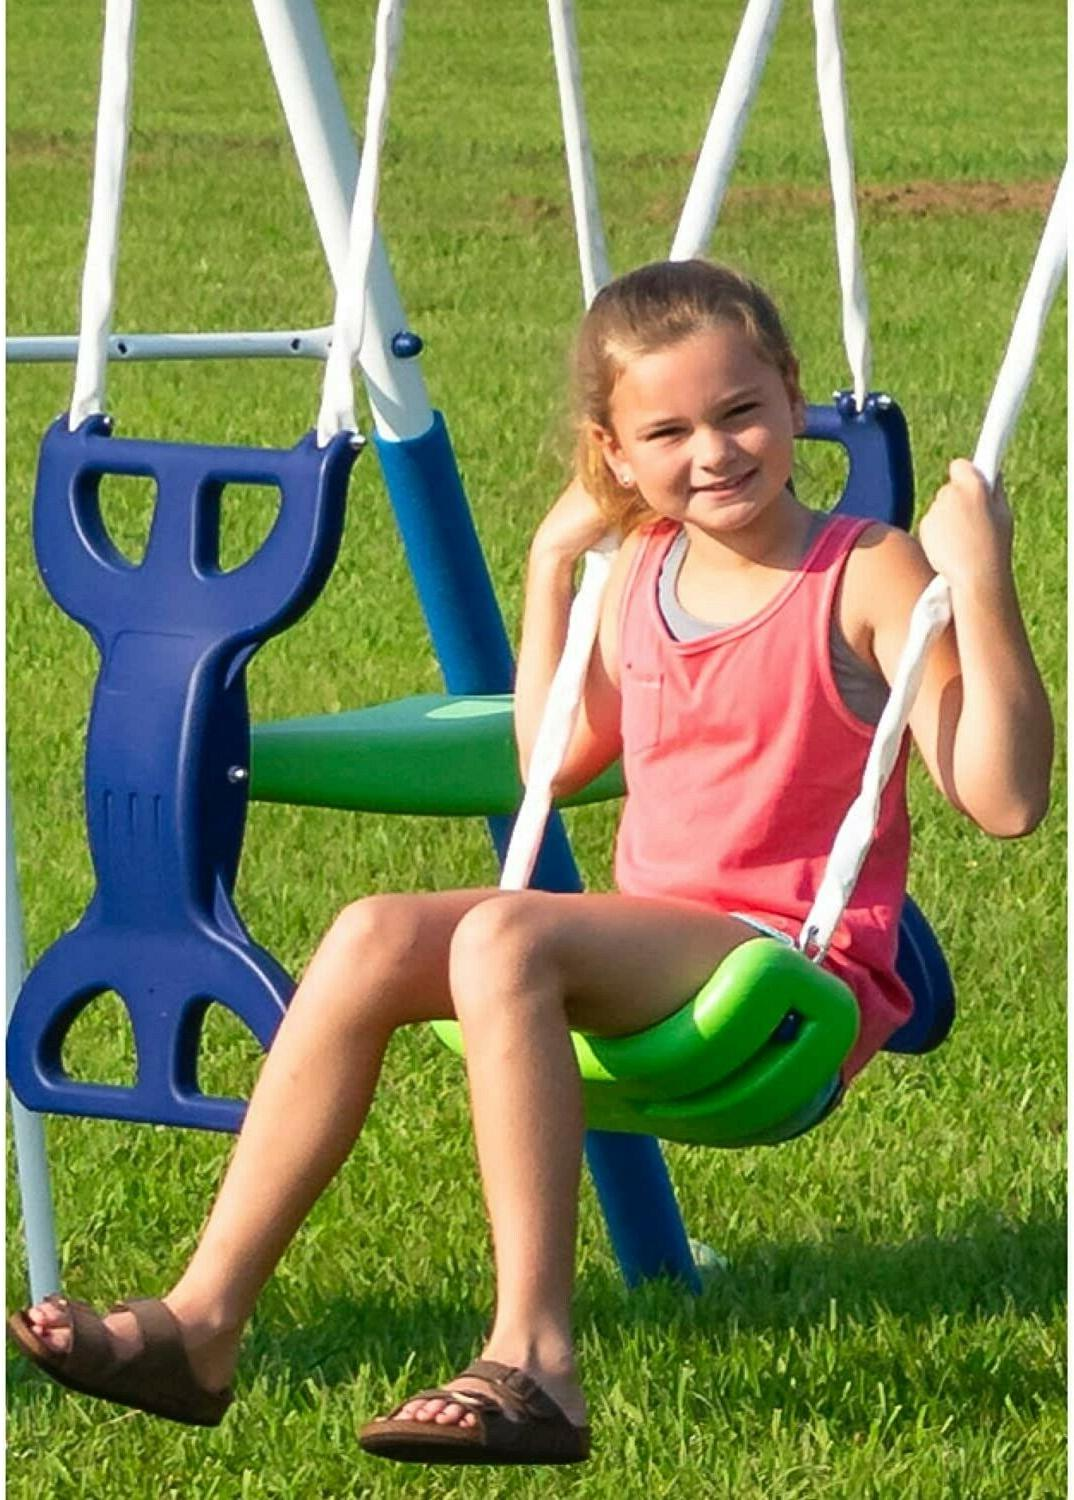 swing outdoor toys, backyard outdoor playsets